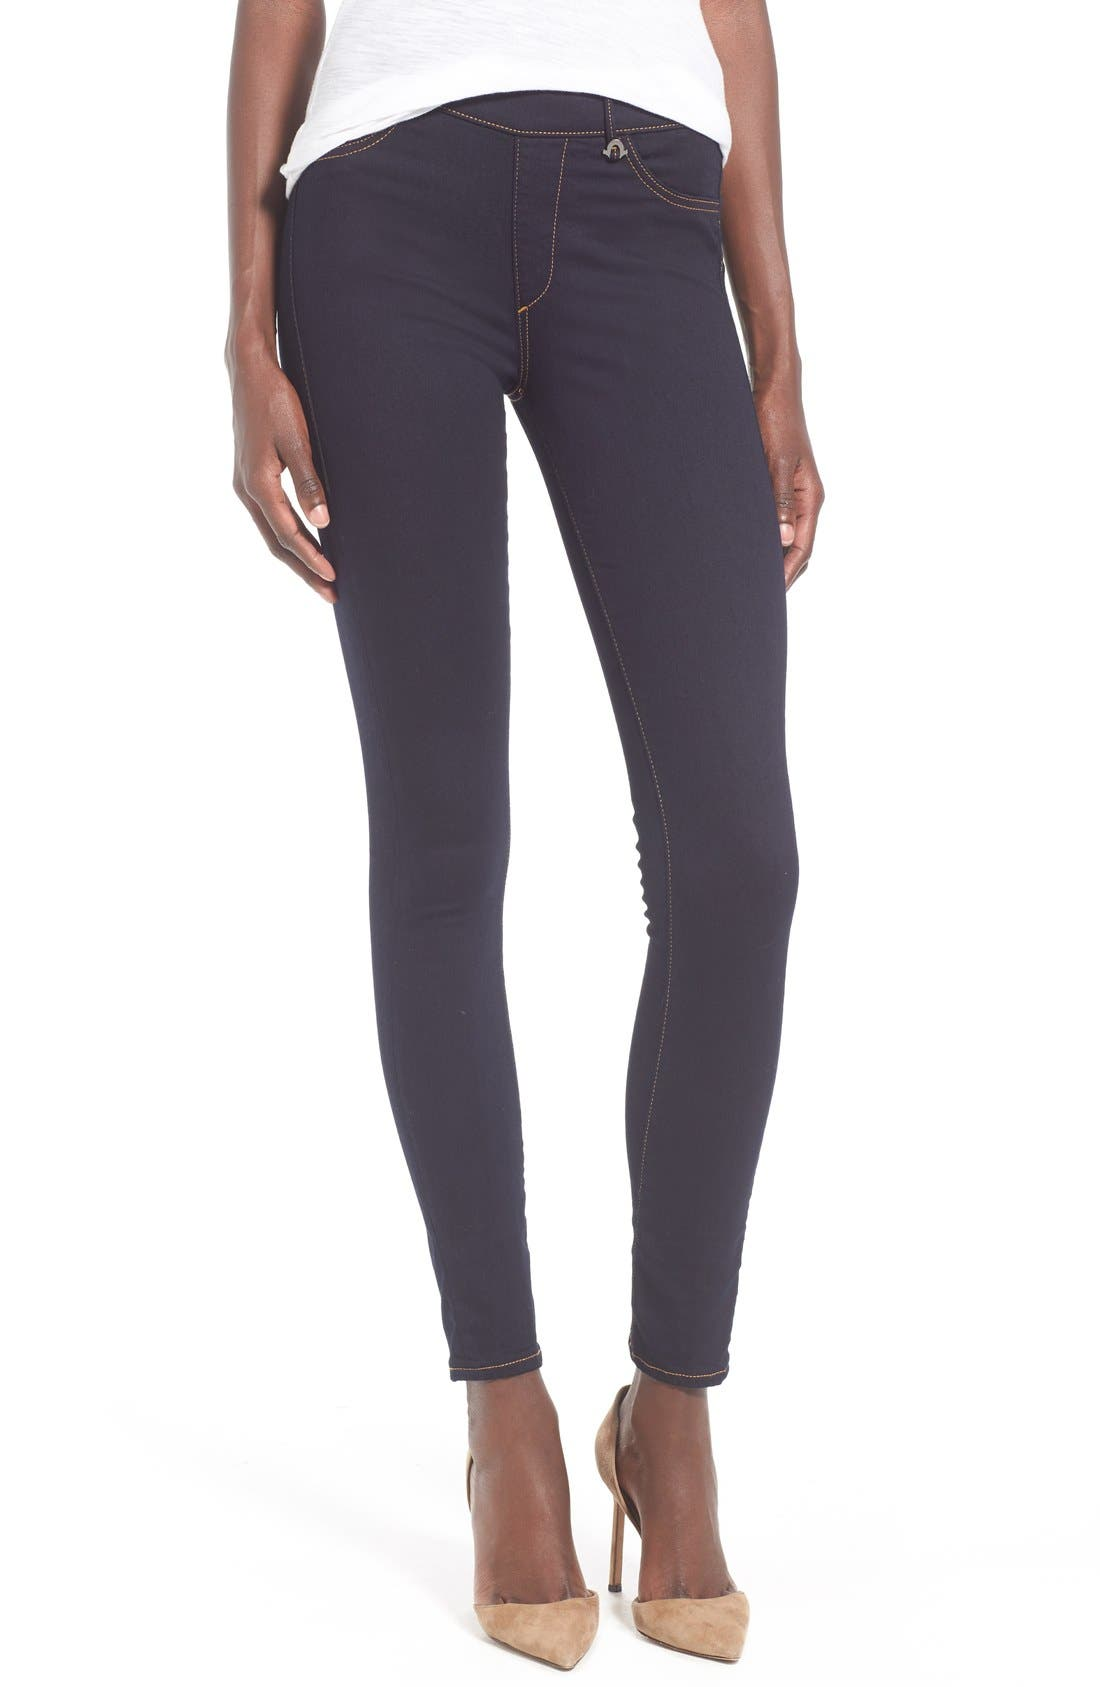 True Religion Brand Jeans 'Runway' Denim Leggings (Body Rinse)